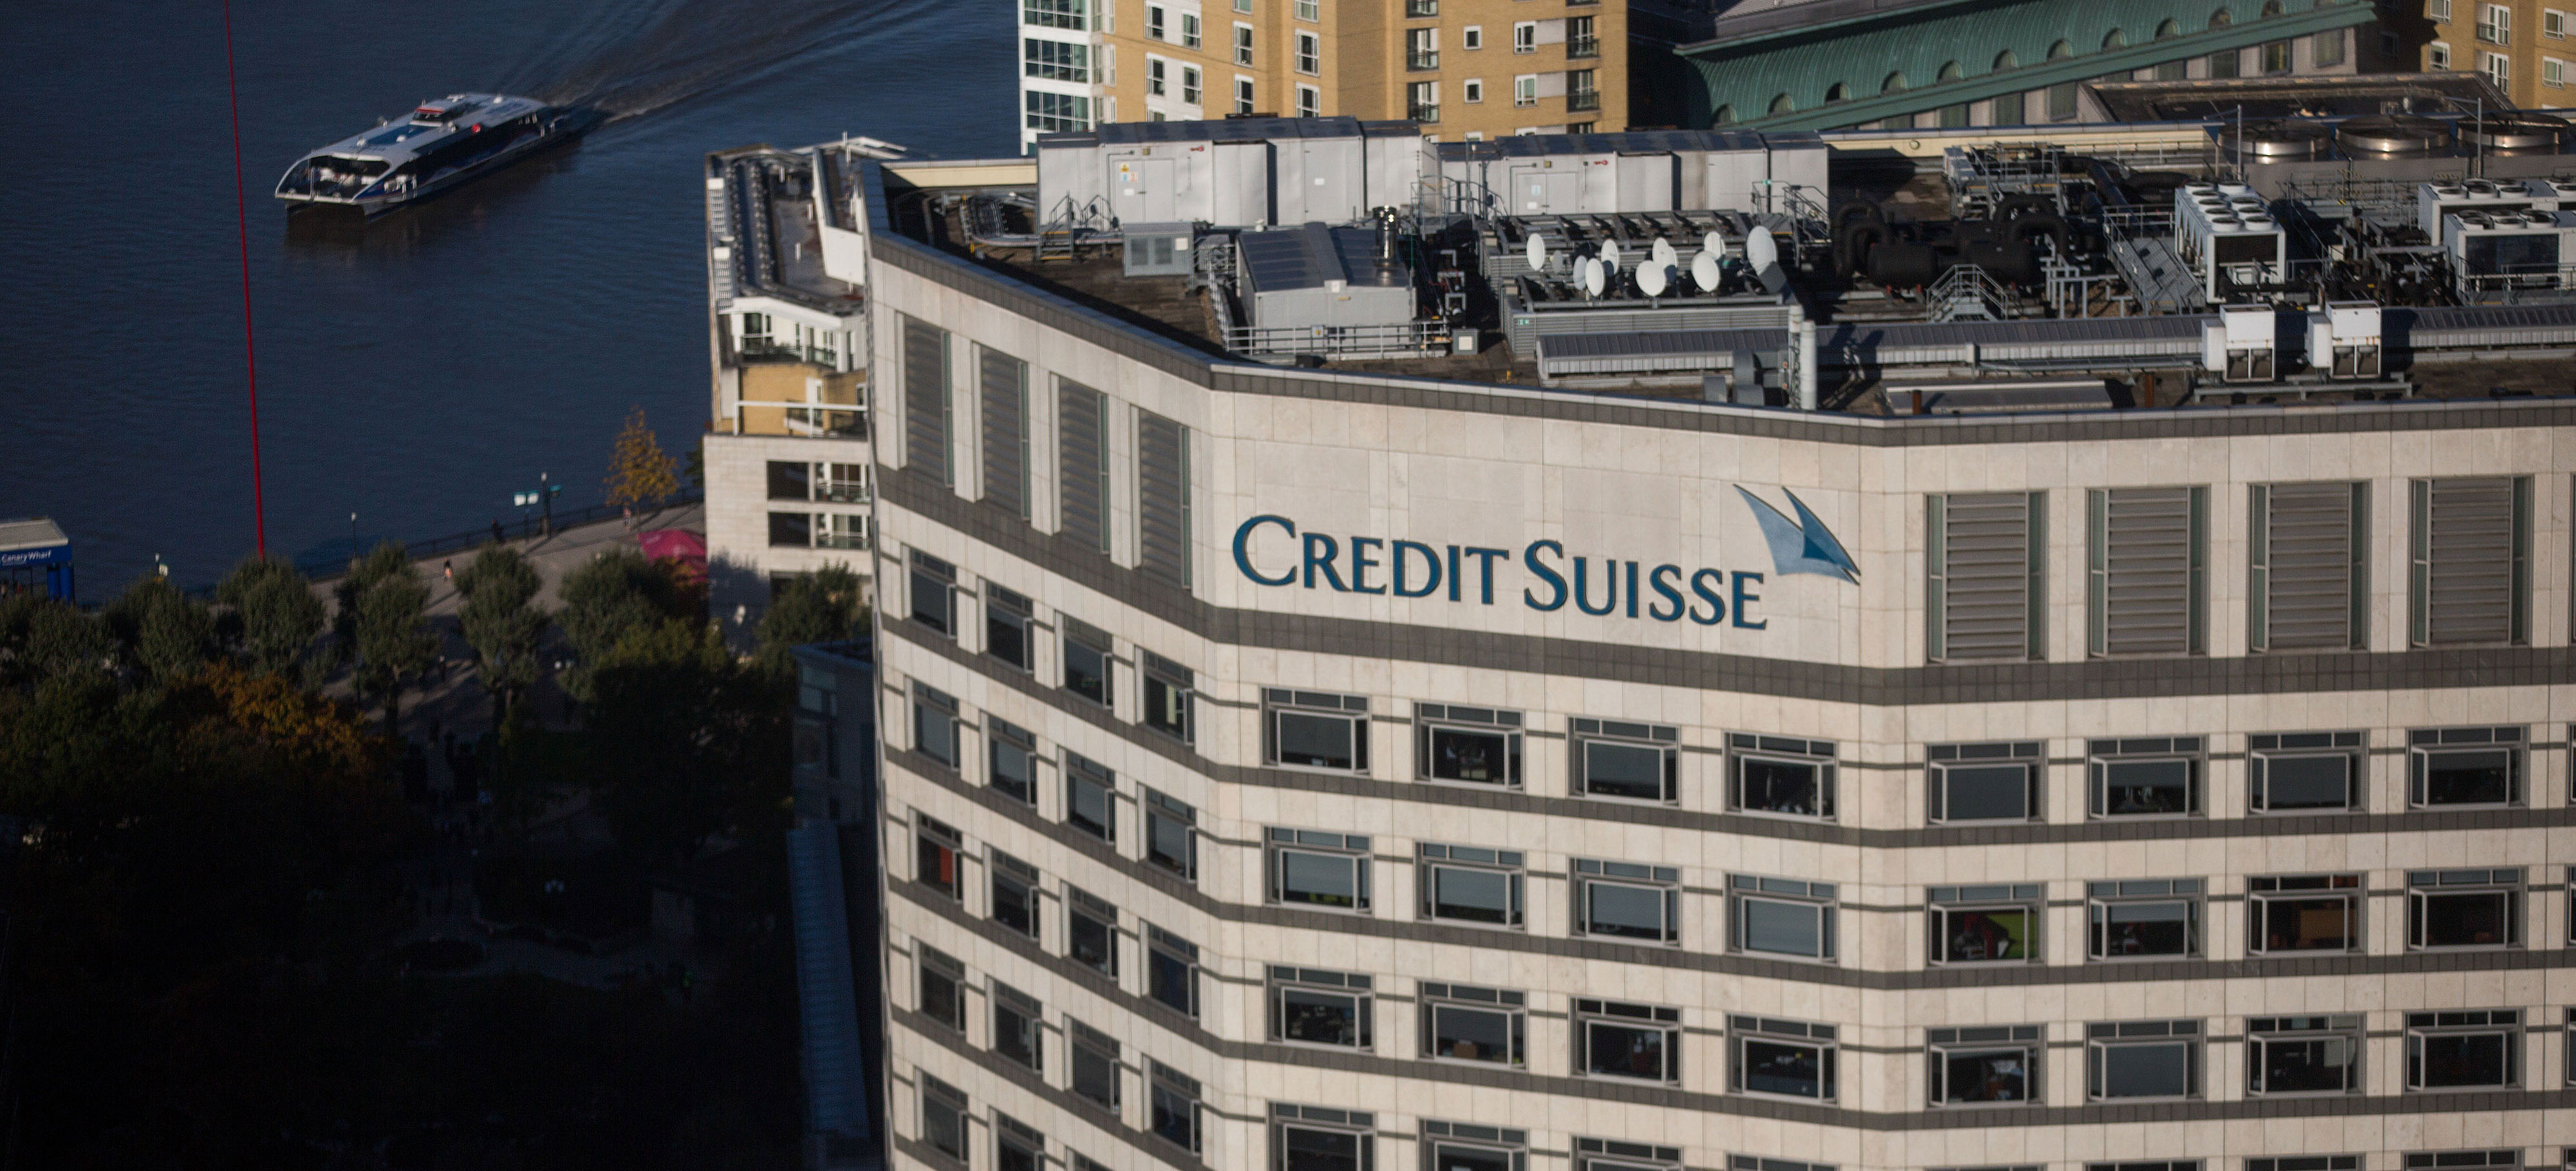 Credit Suisse Facing Penalty For Leaking Company Information